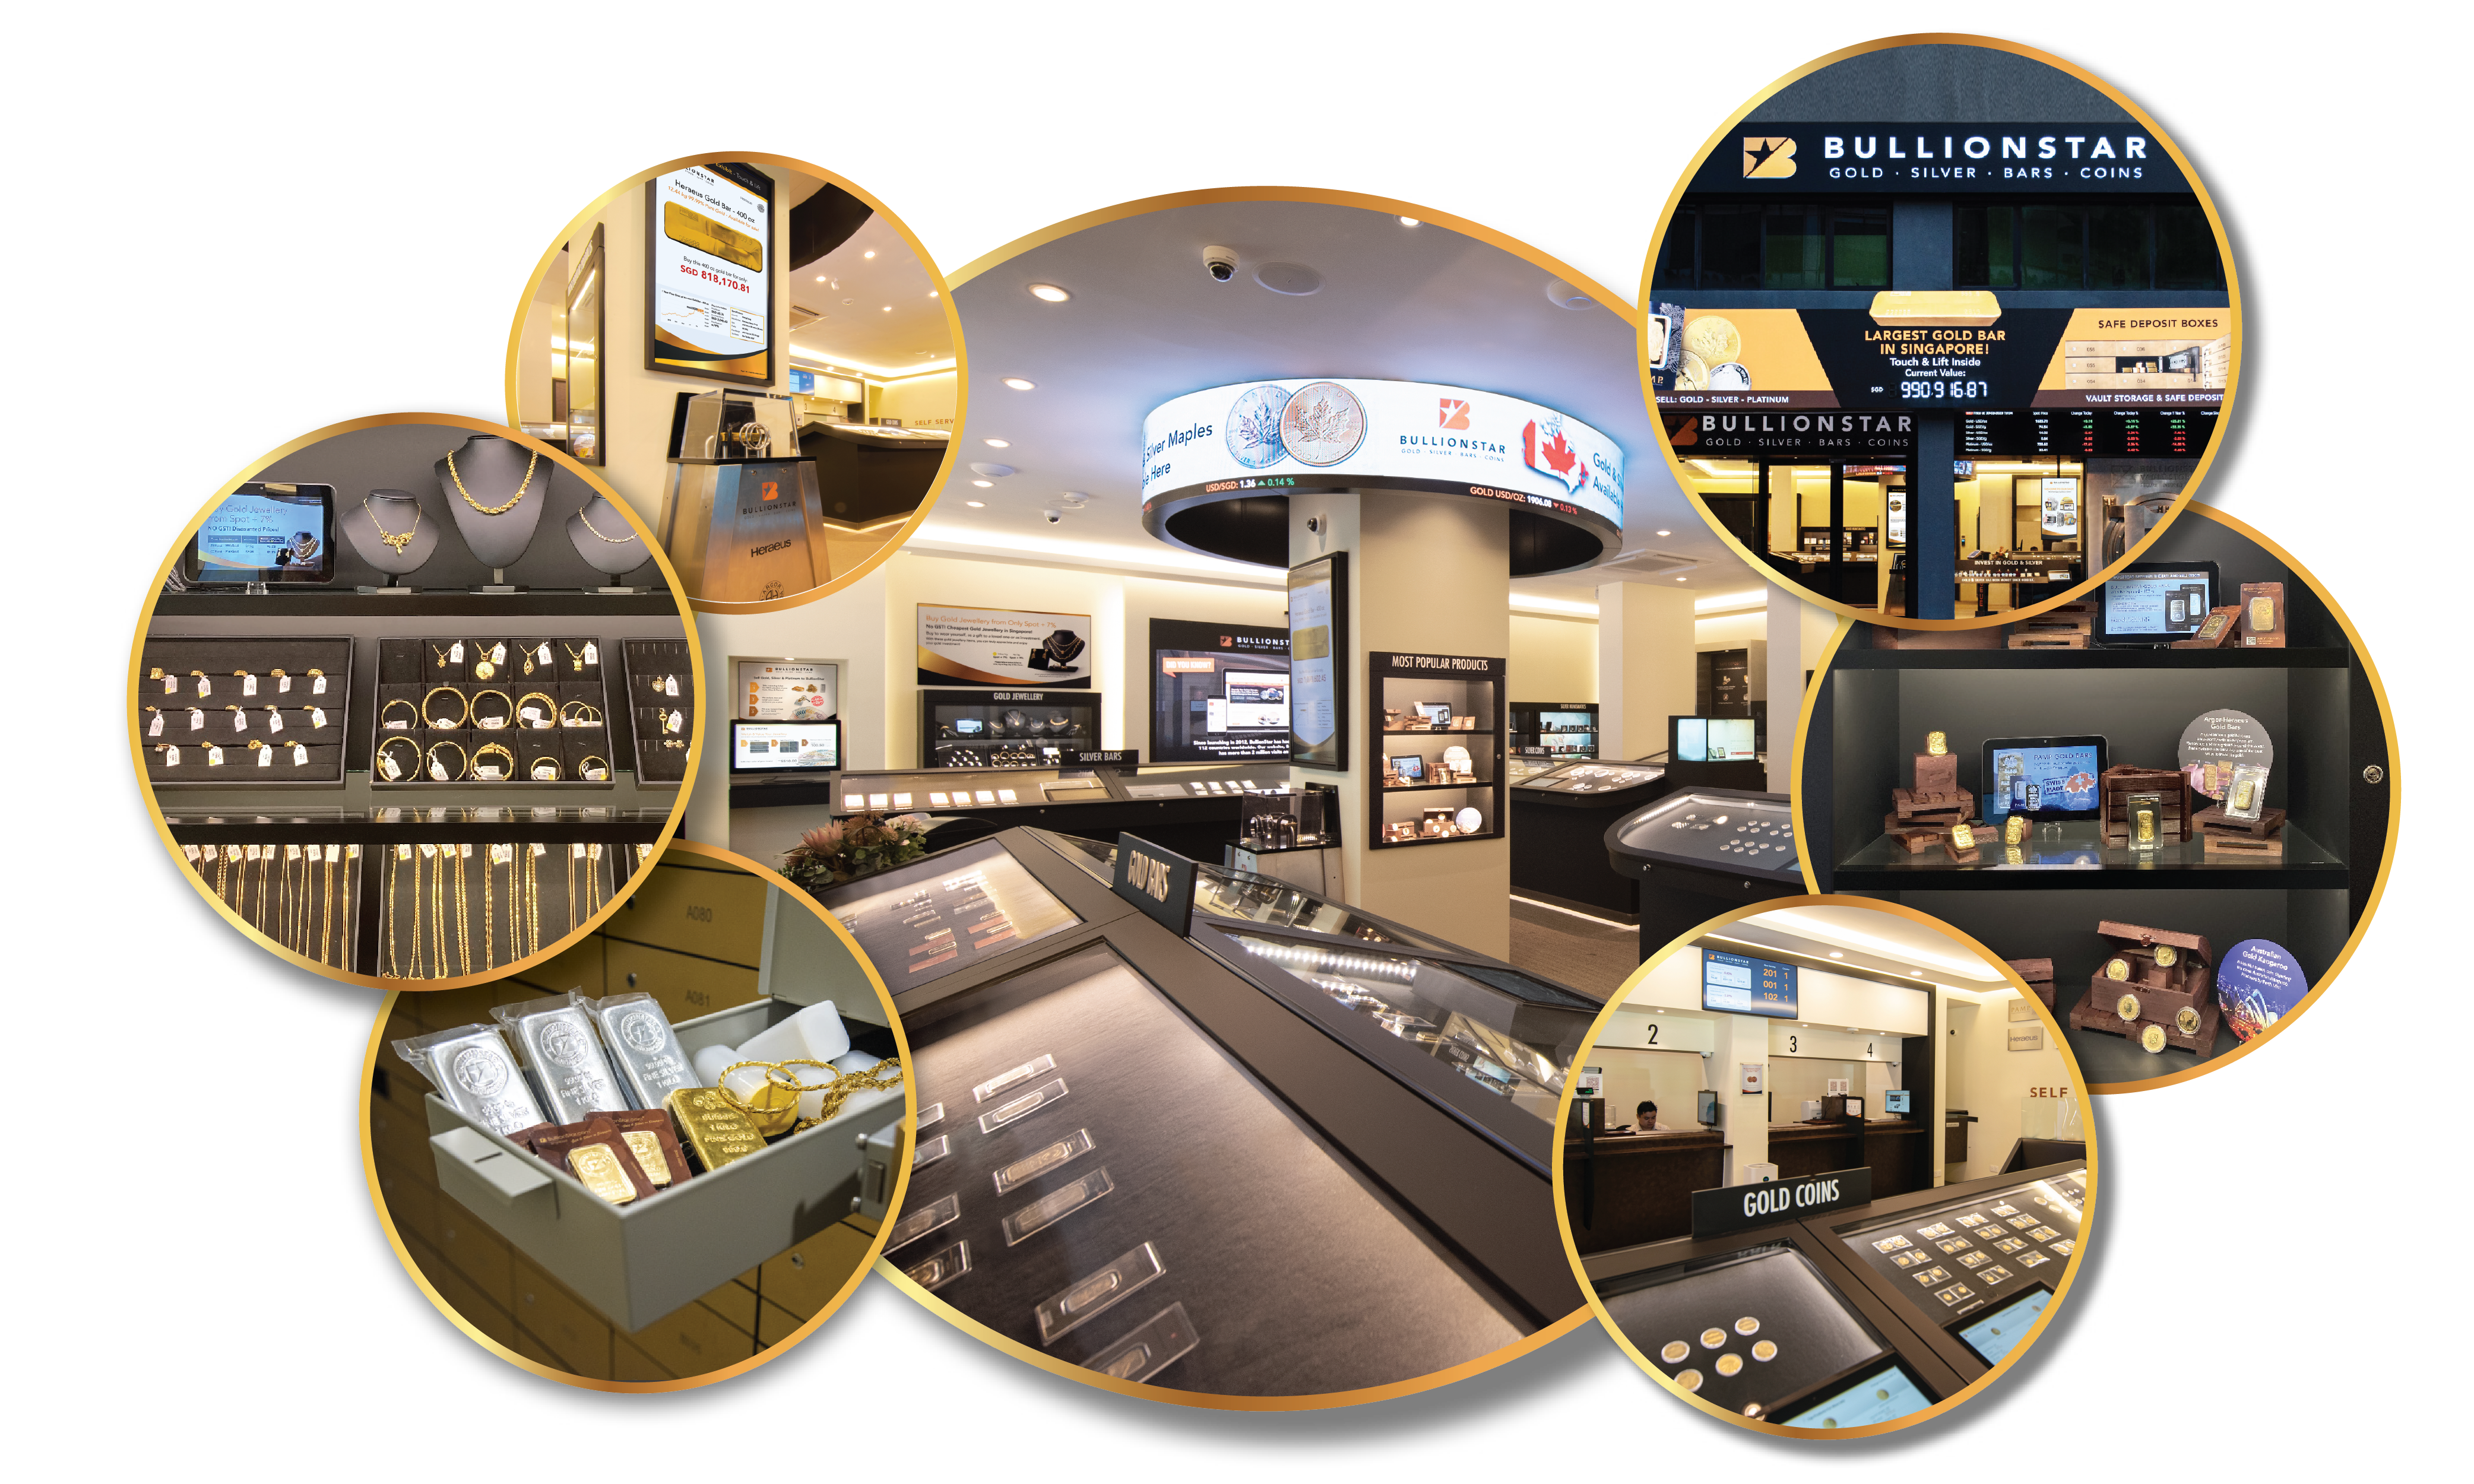 A picture collage of BullionStar's newly renovated Bullion Center in central Singapore